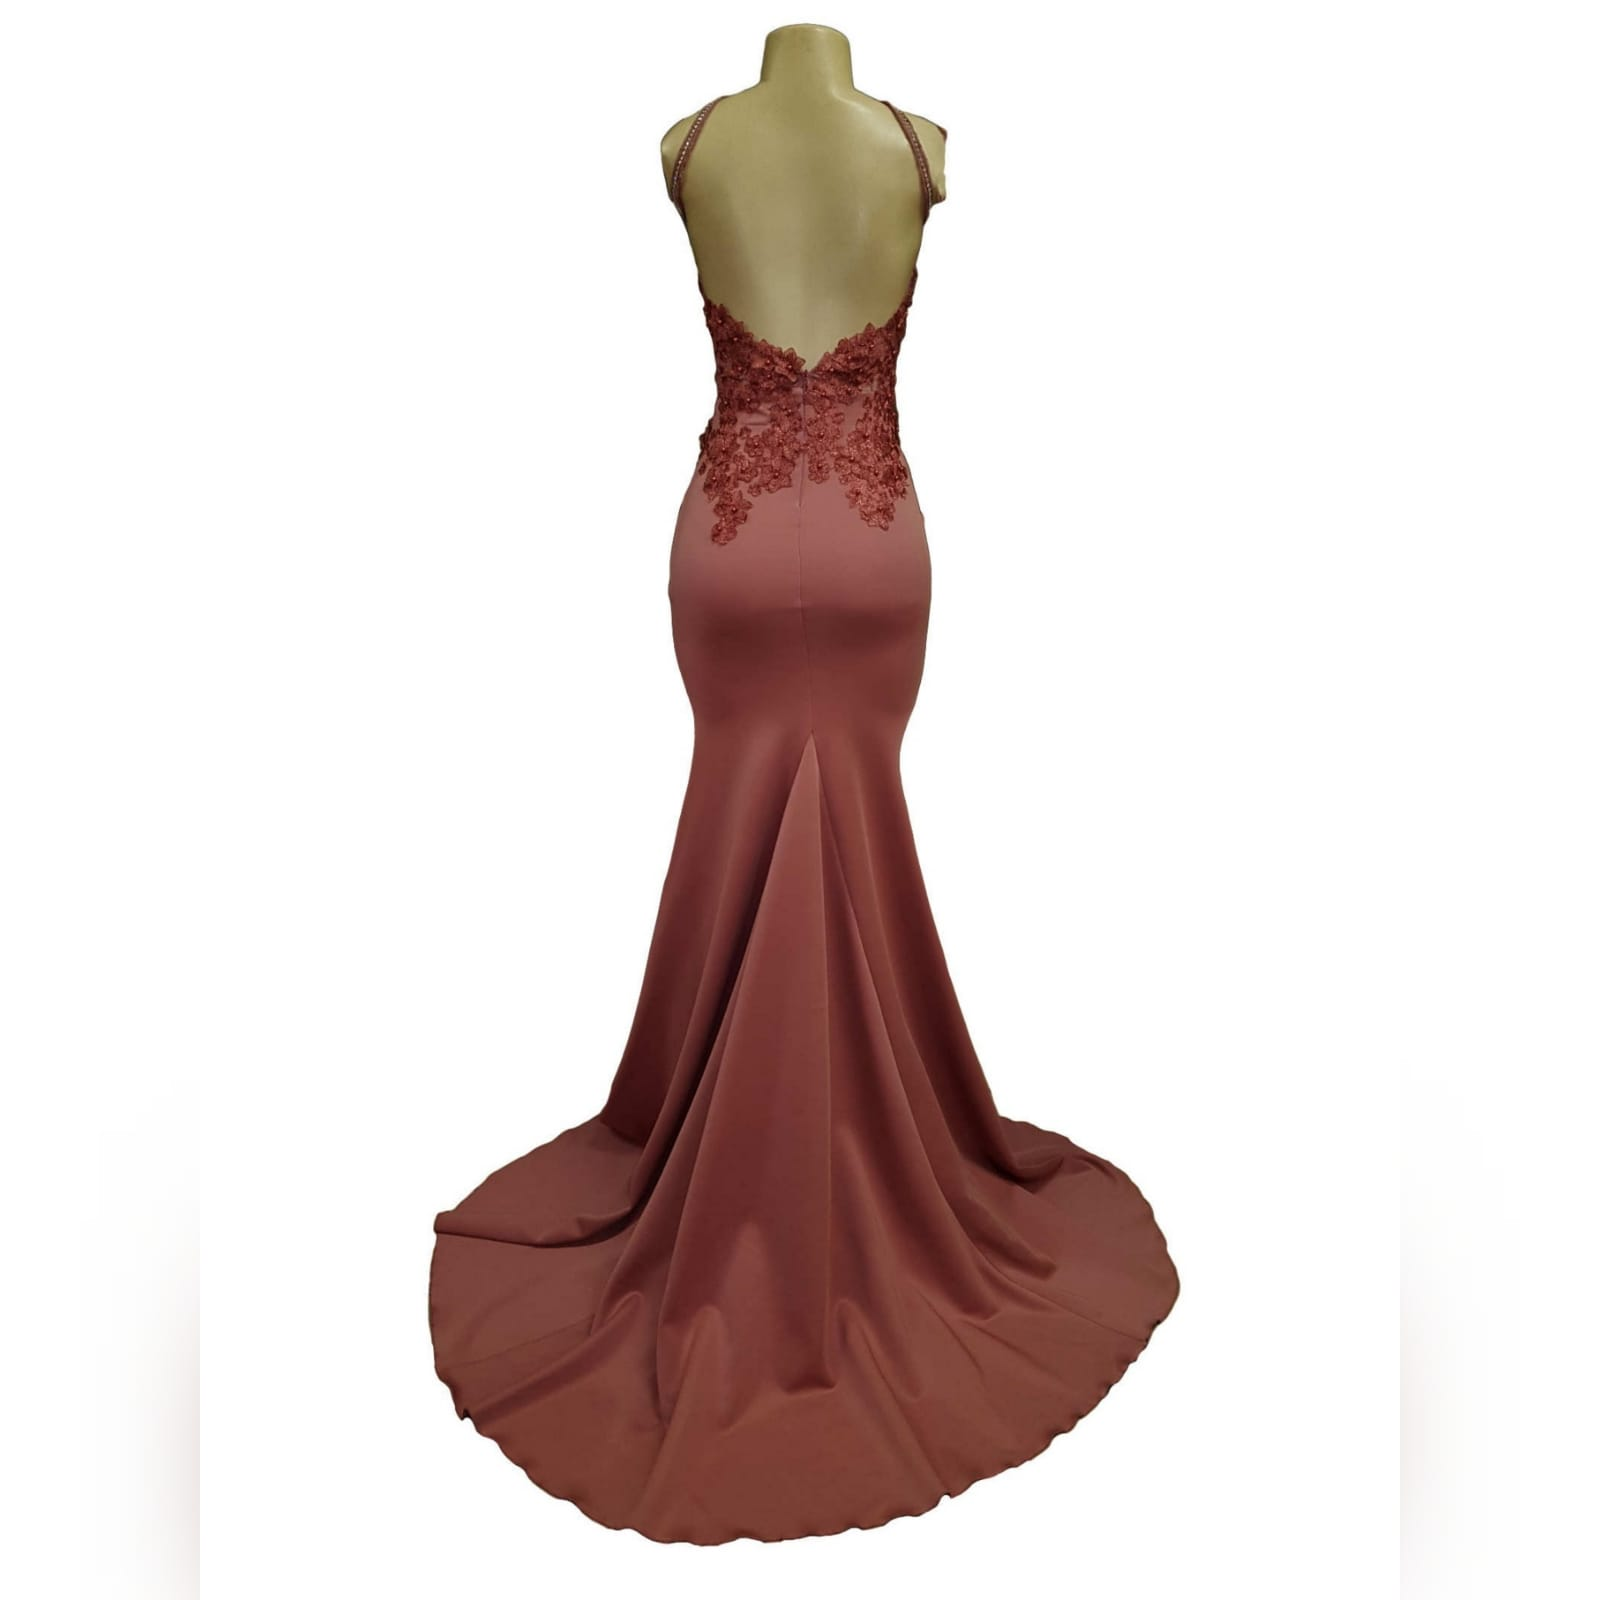 Pink elegant prom dress 2 choose a pink elegant prom dress for your special event. A colour that inspires kindness, sensitivity and warmth. This colour on this 3d shine lace long sexy dress creates a feel good mood, and that all will be amazing for your special night.